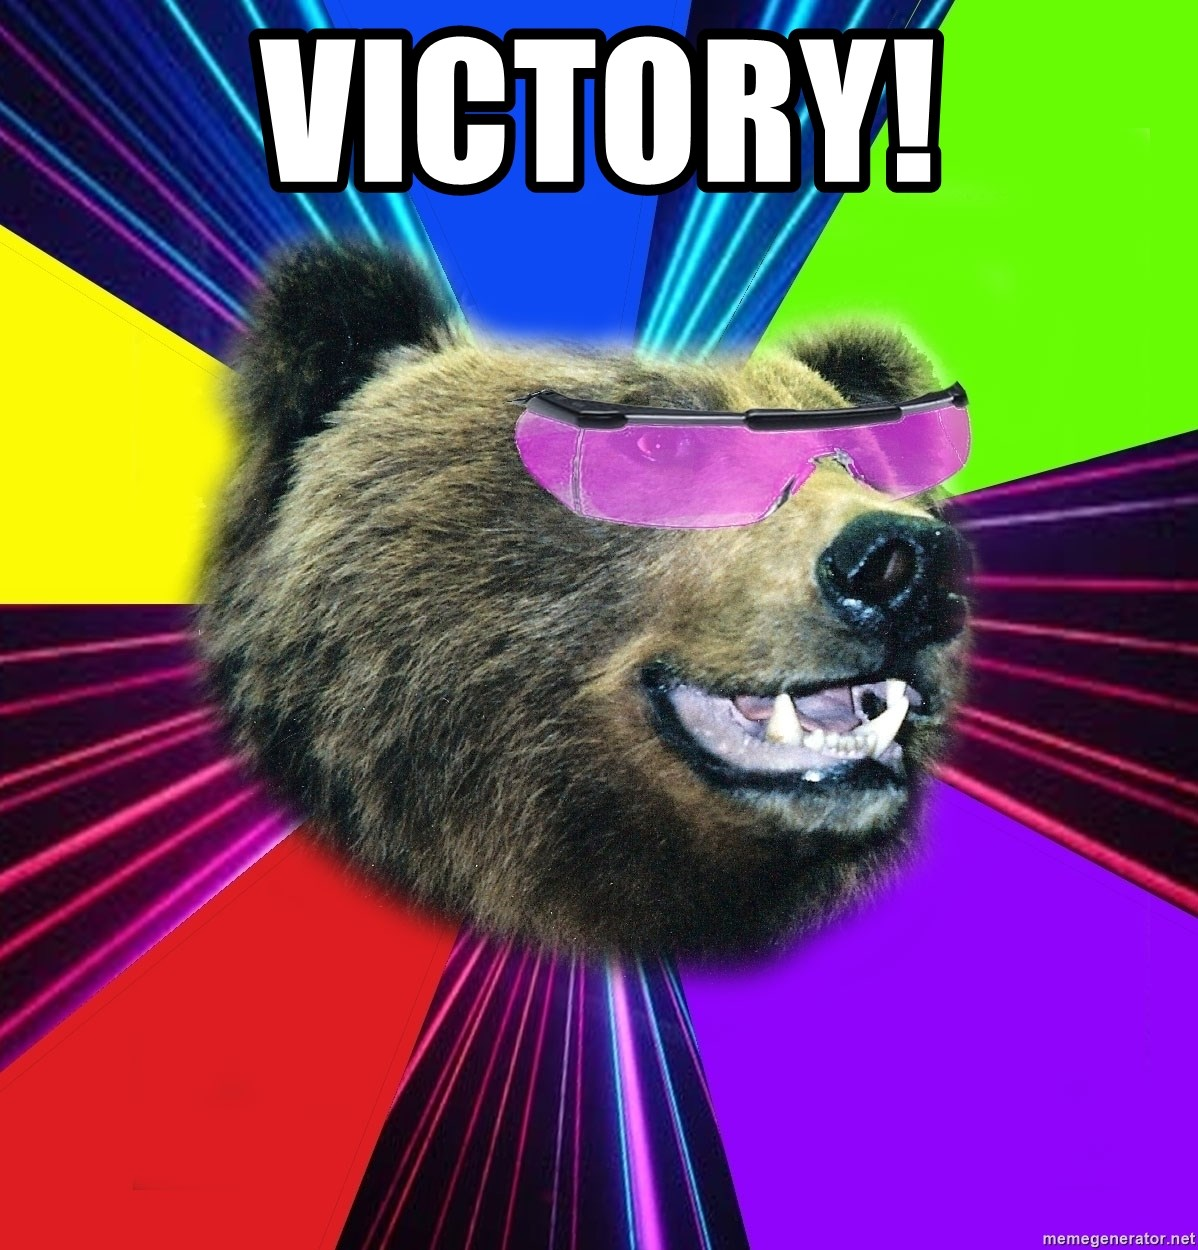 Party Bear - Victory!